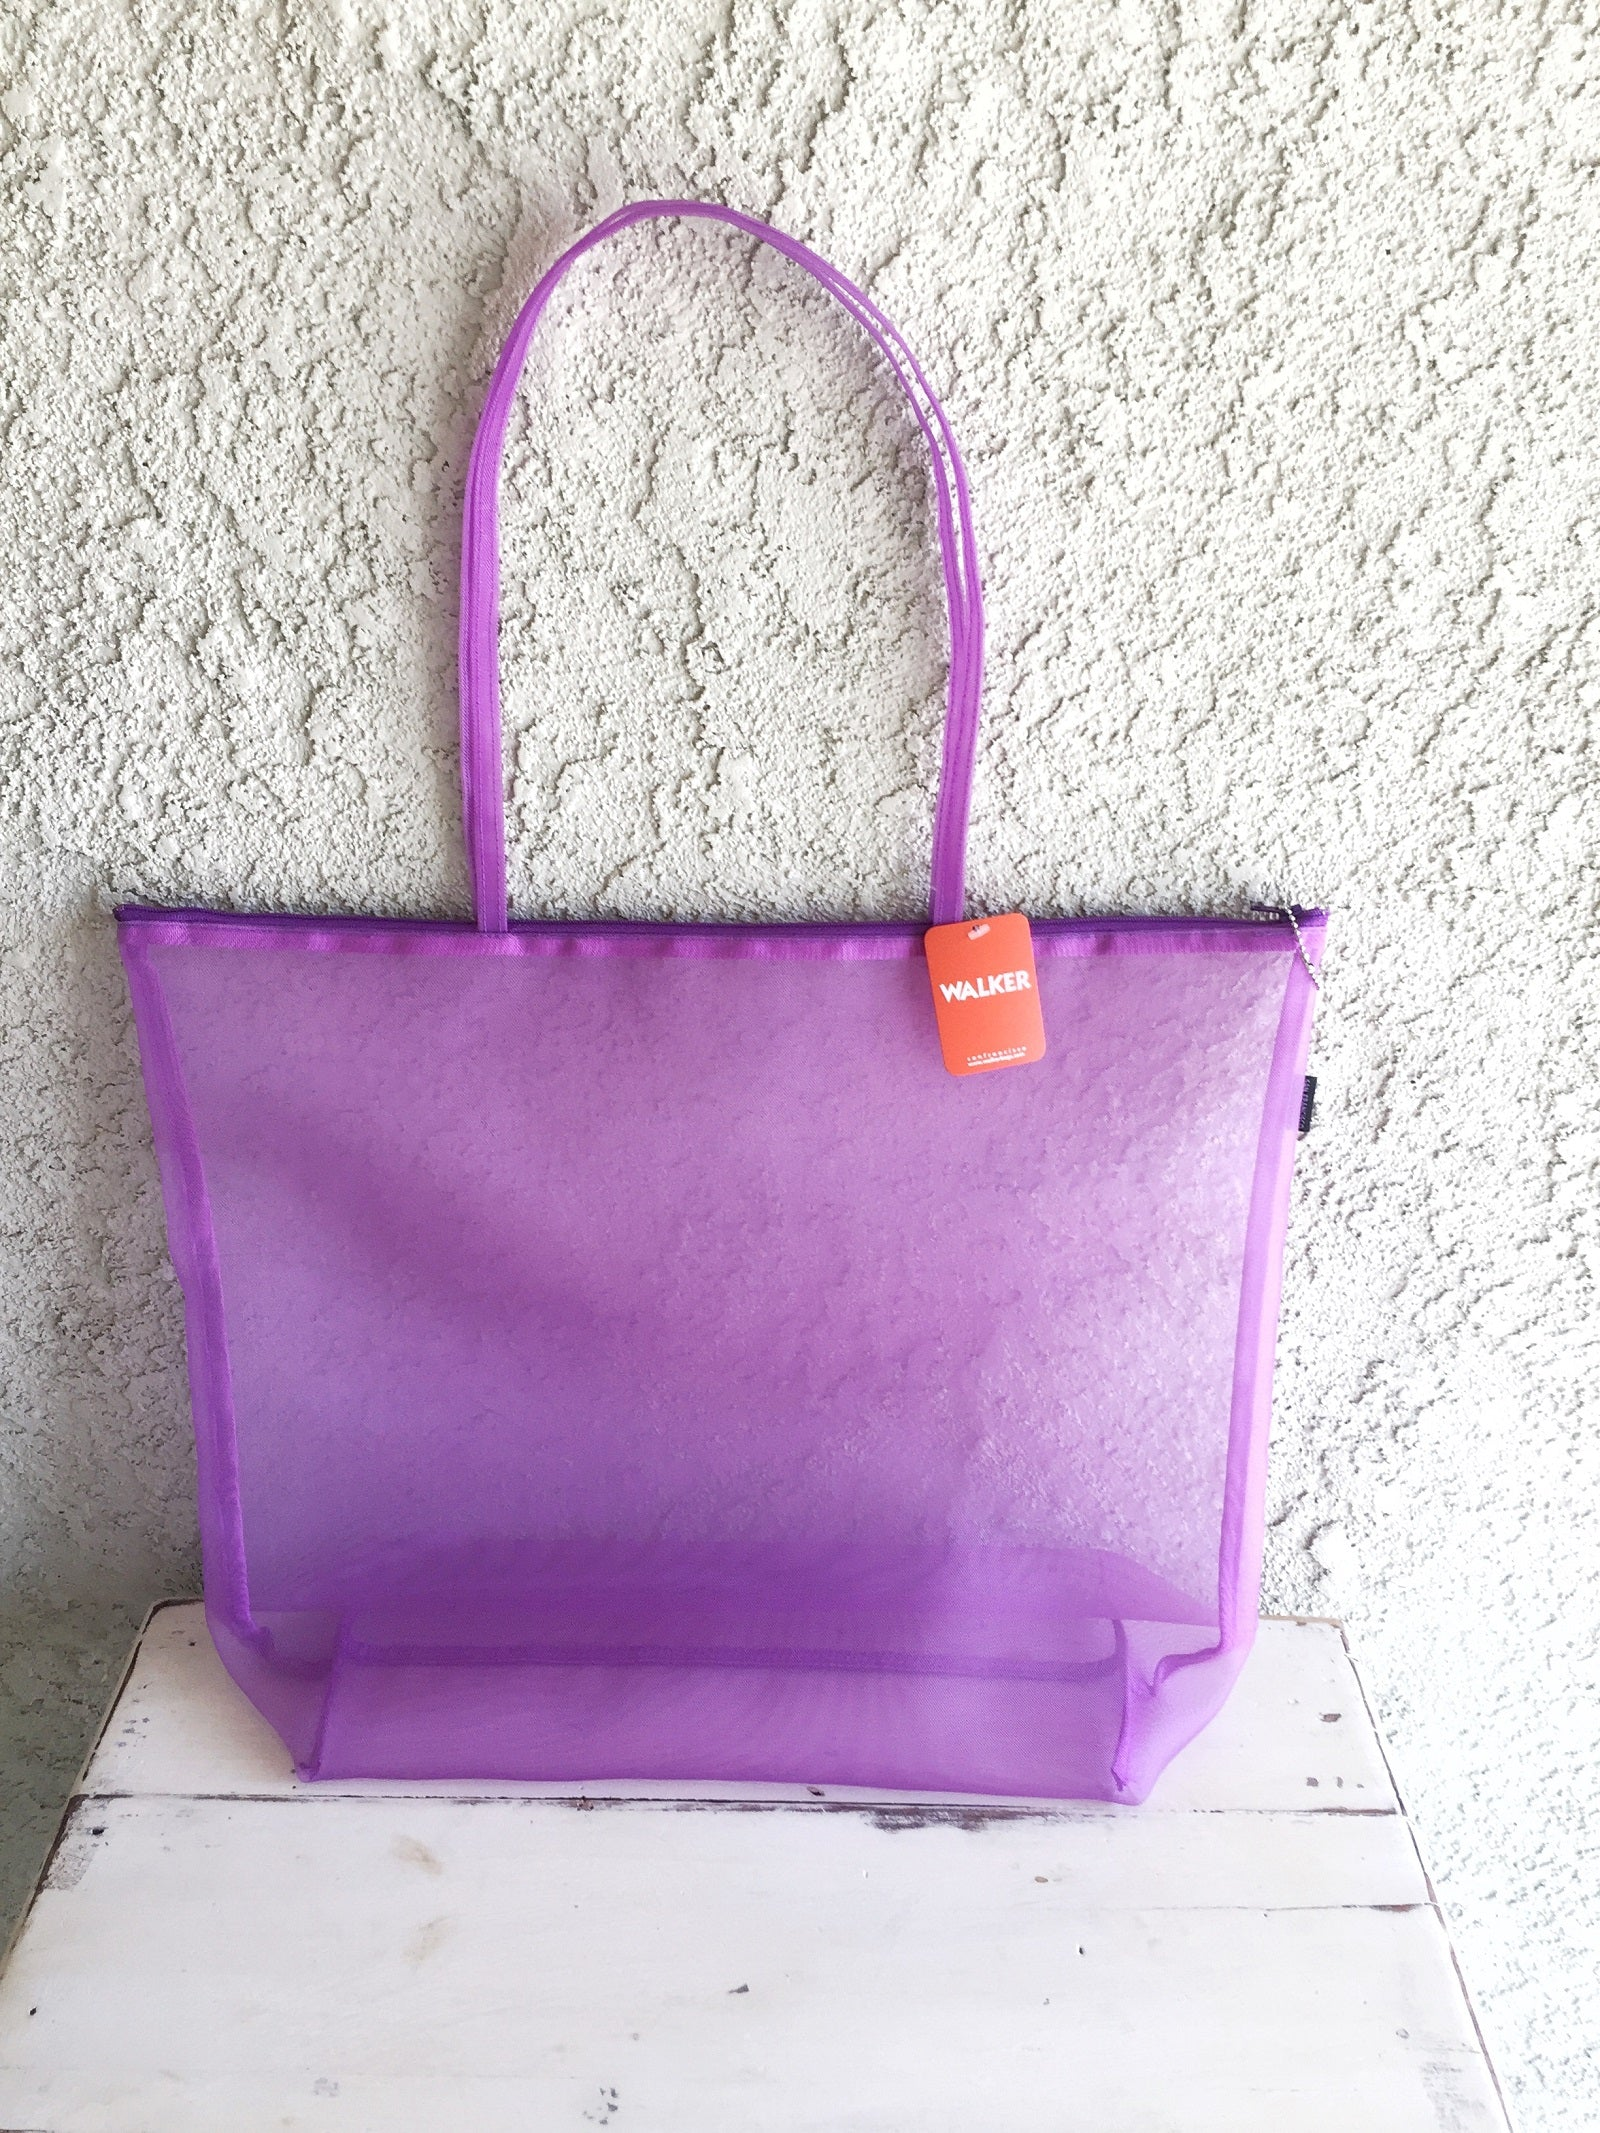 Walker Zip Tote - Large